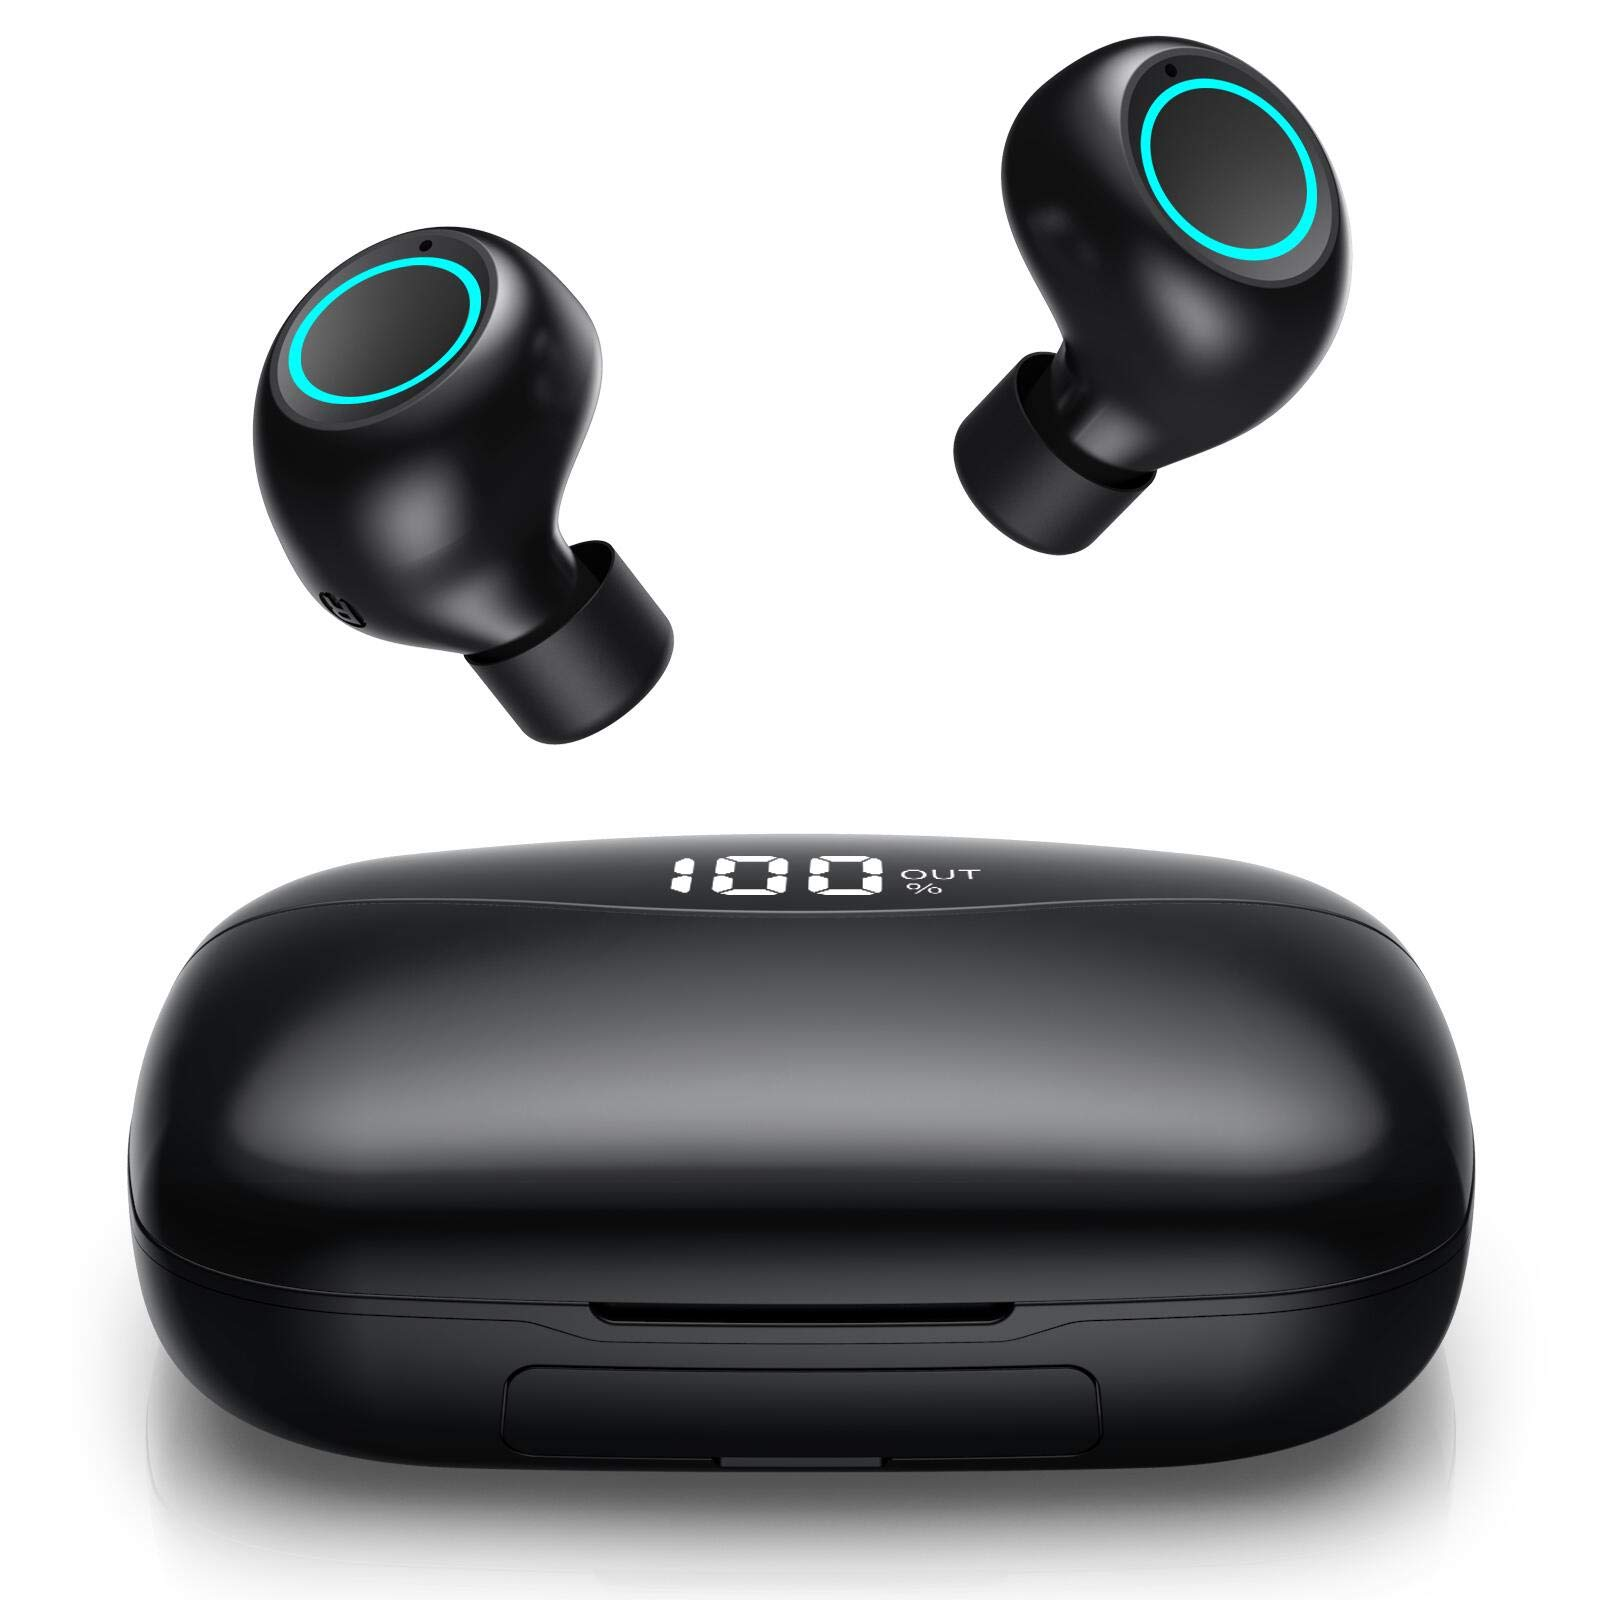 Feob Wireless Headphones Bluetooth 5 0 Earphones 2019 New Lcd Digital Display 3500mah Charging Case True Wireless Earbuds 50h Playtime 3d Stereo Sound Noise Cancelling Cvc 8 0 Headphones Waterproof Soundgenie Co Uk